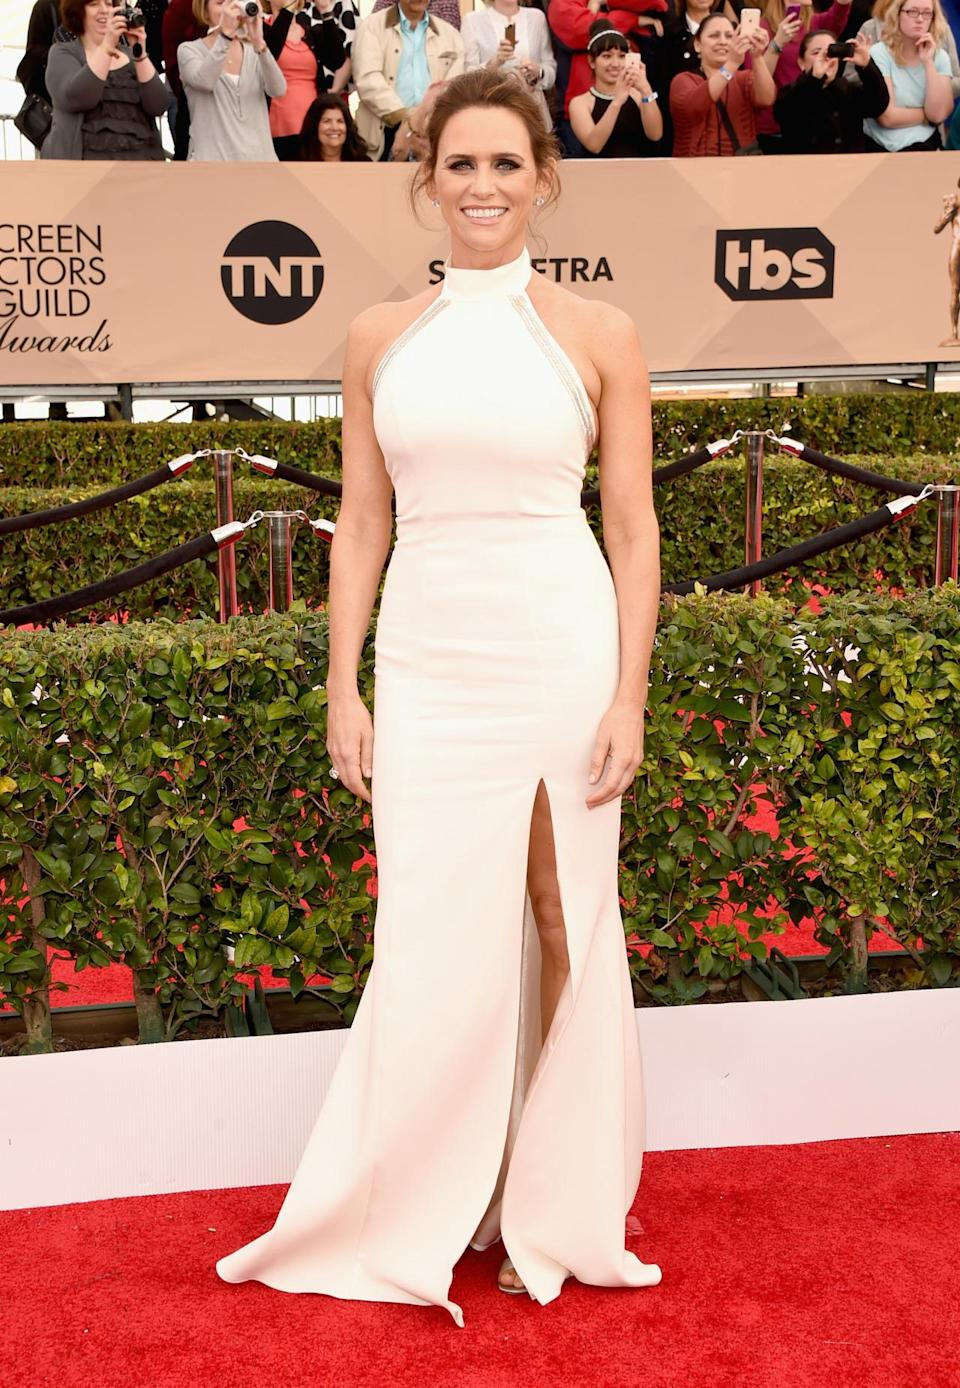 <p>The <i>Transparent </i>actress brought the street style turtleneck trend to the red carpet in a white gown with a center slit in the skirt. </p>